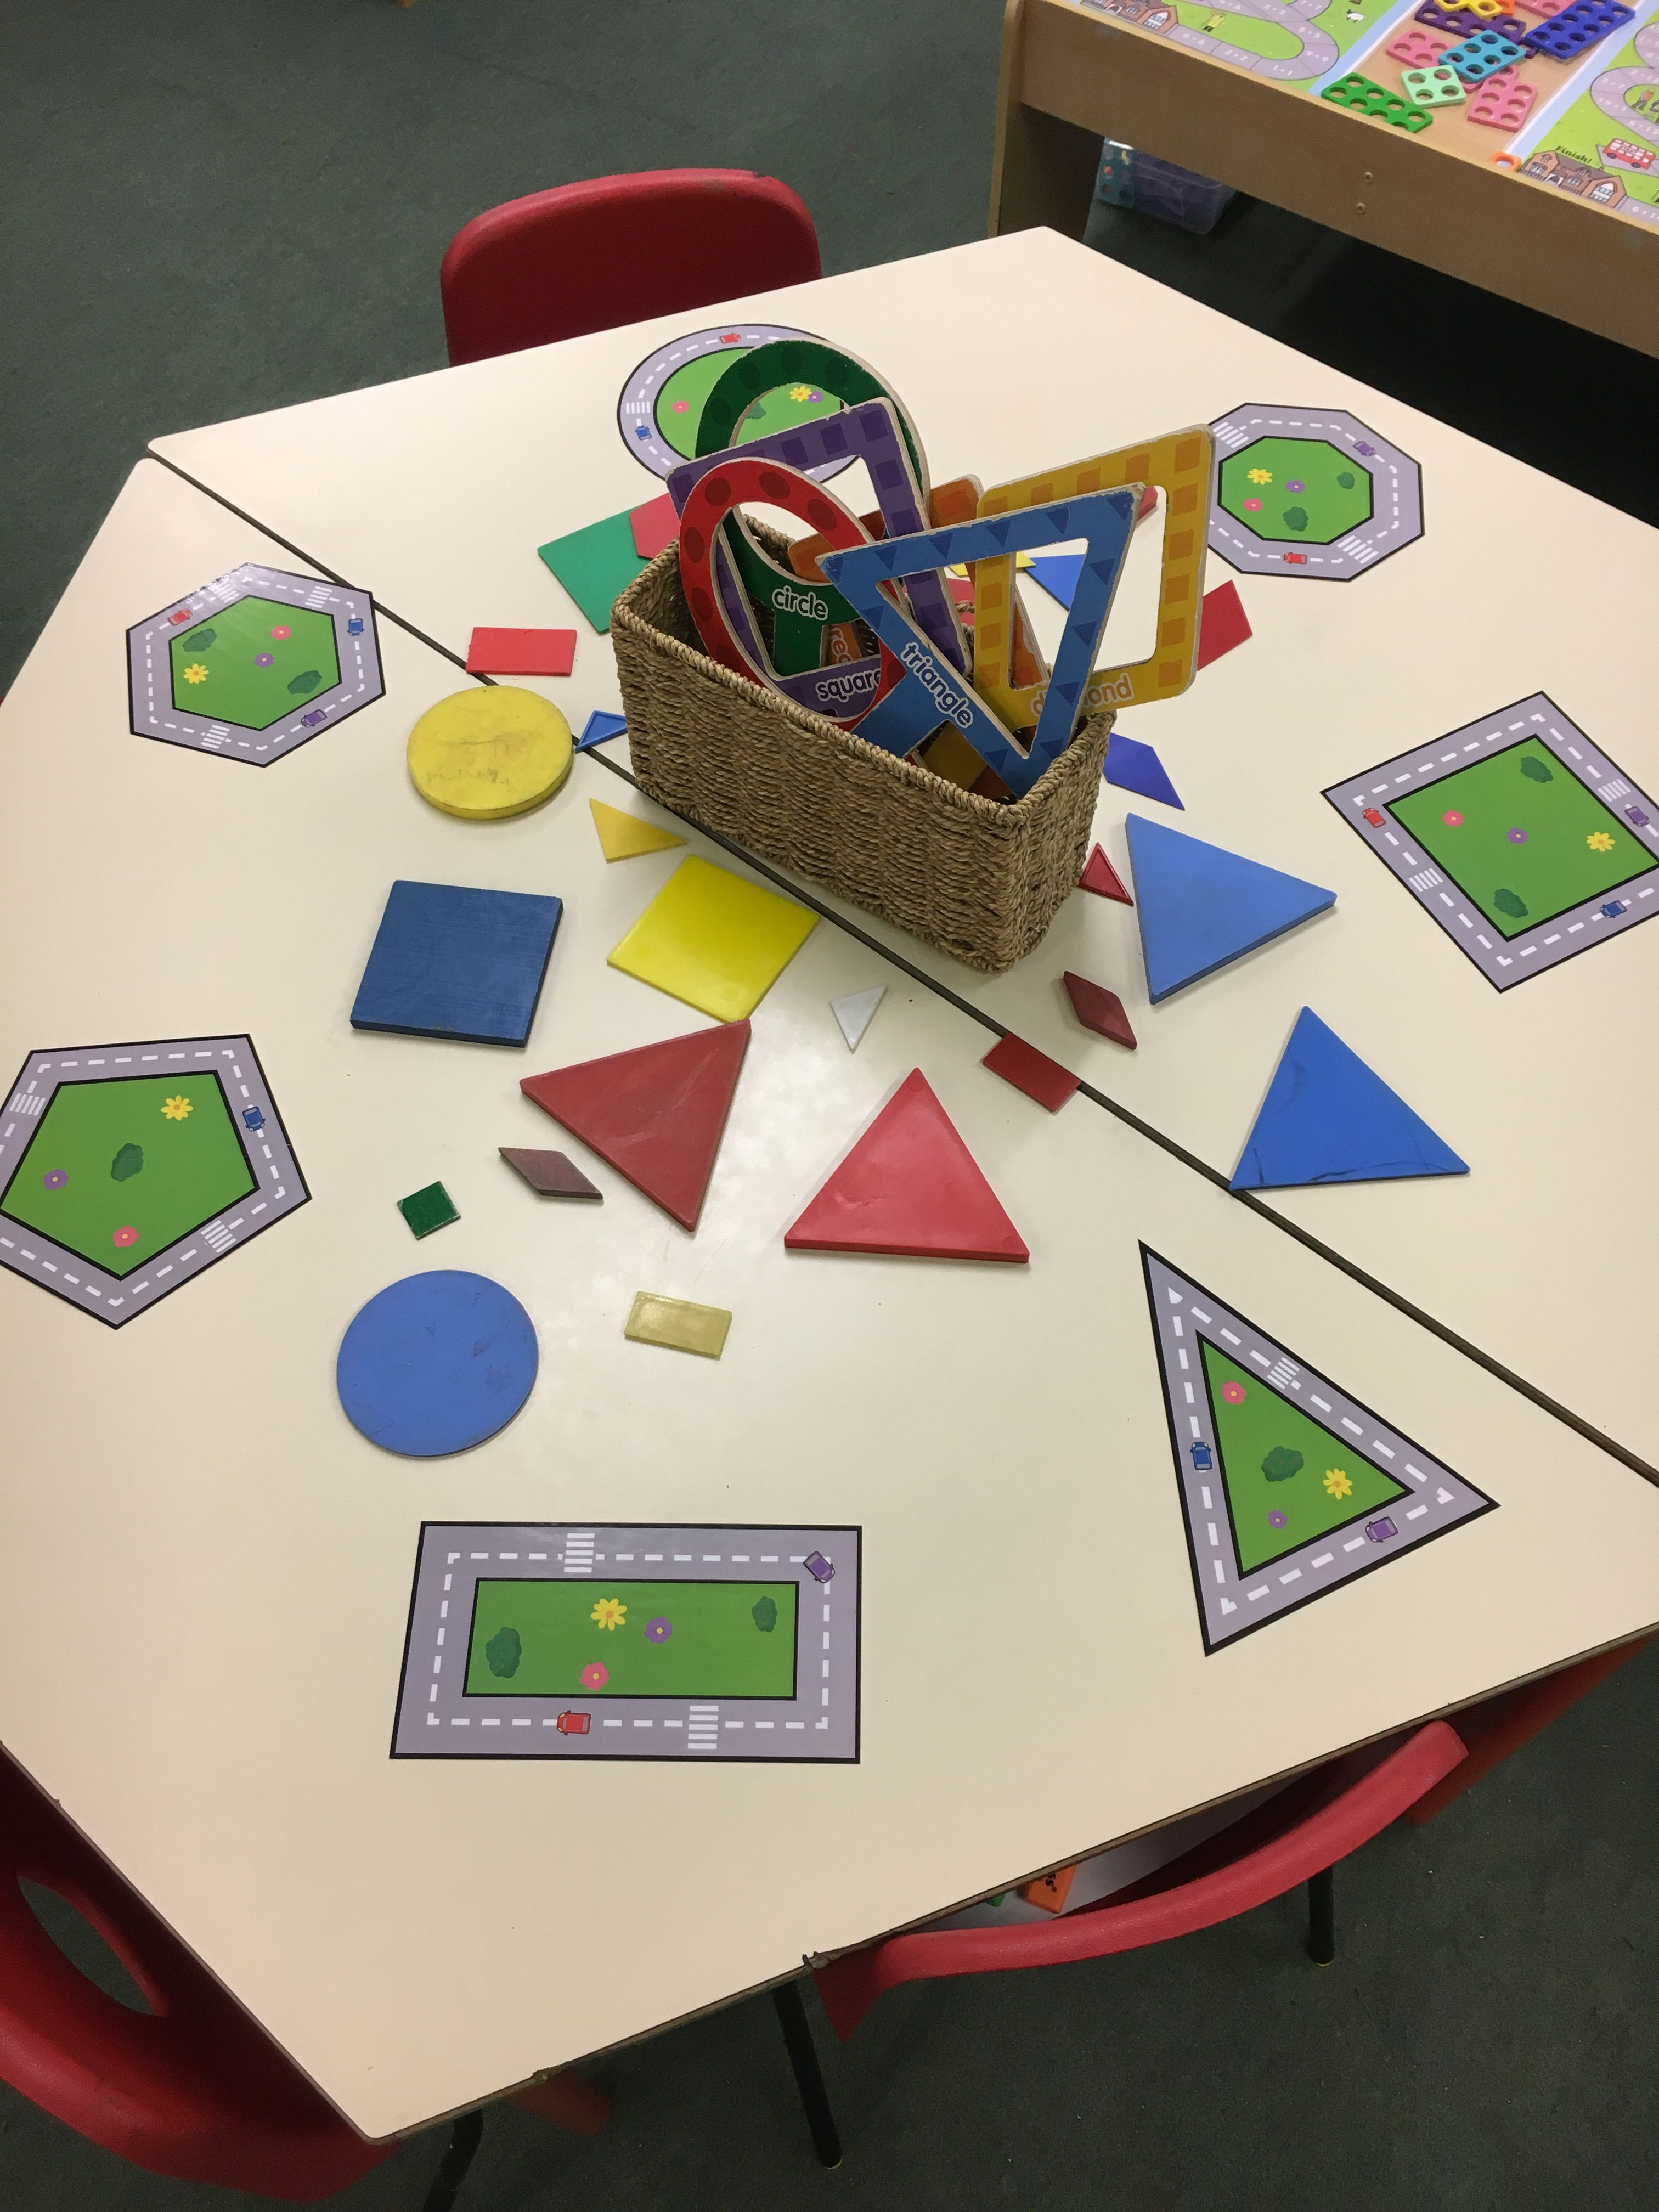 Transport Themed Shapes Table With Shapes To Match And